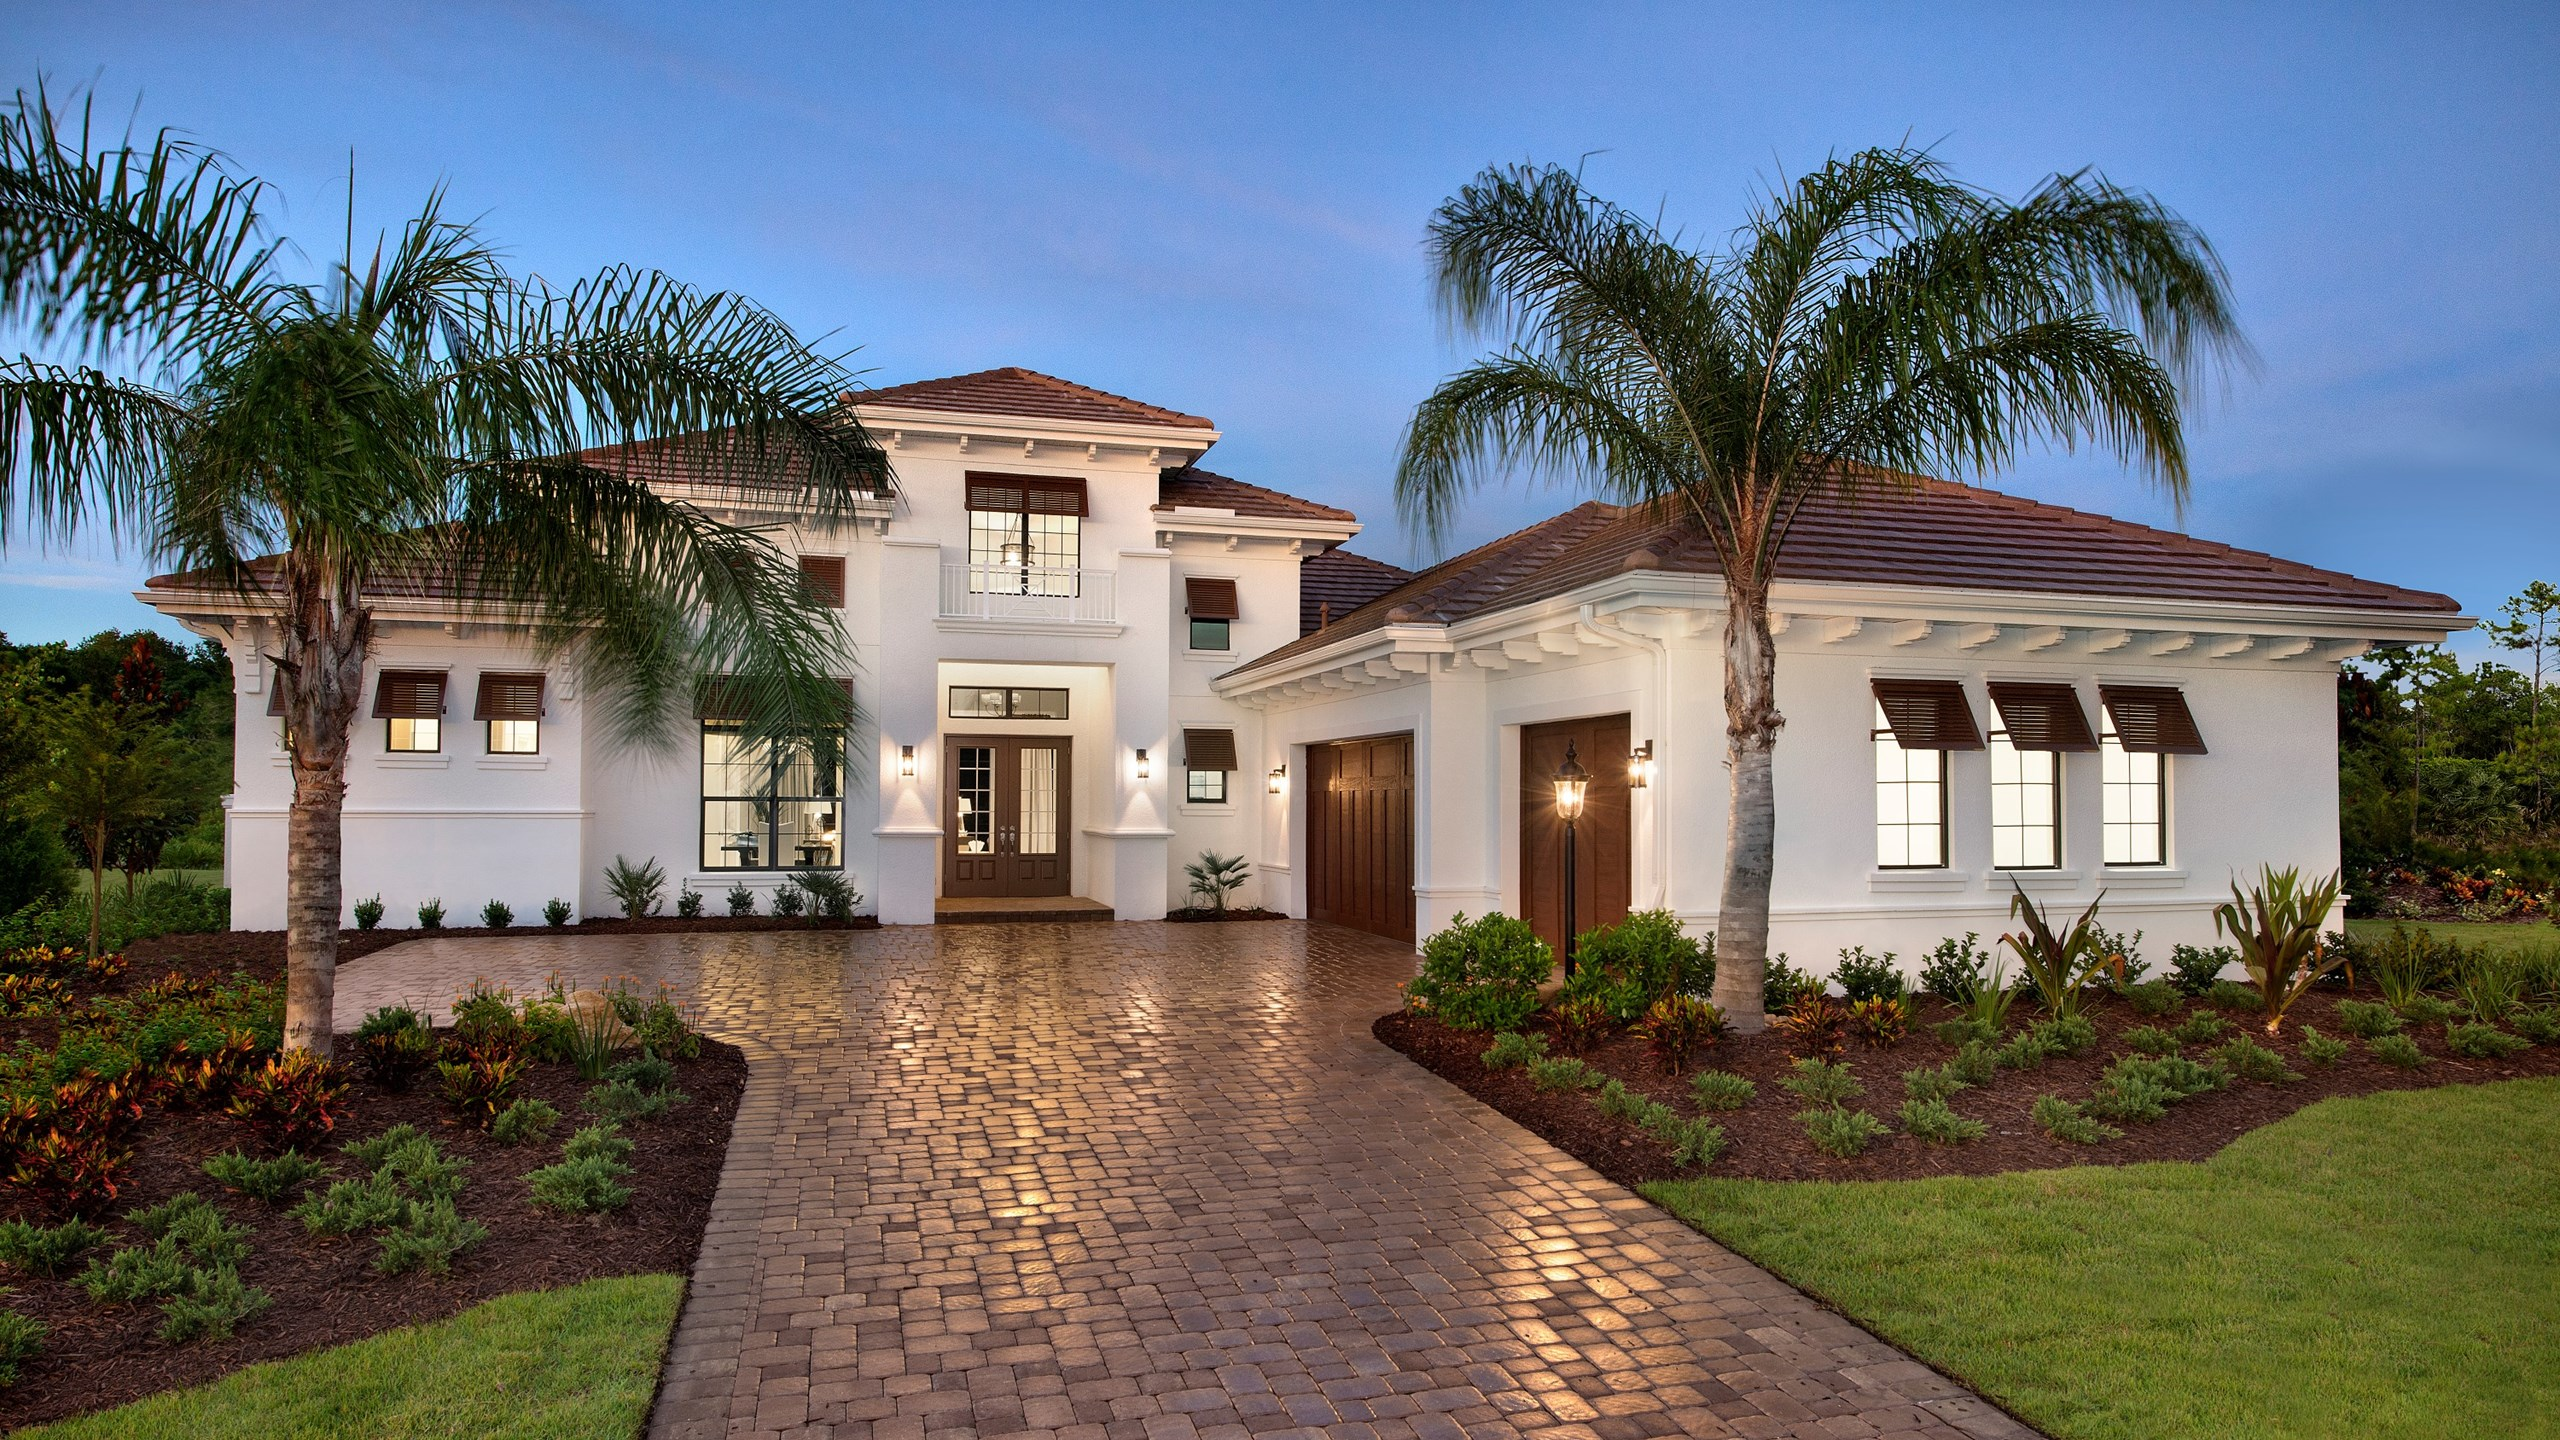 Free Service for Home Buyers | Video Of Lakewood Ranch Florida Real Estate | Lakewood Ranch Realtor | New Homes Communities